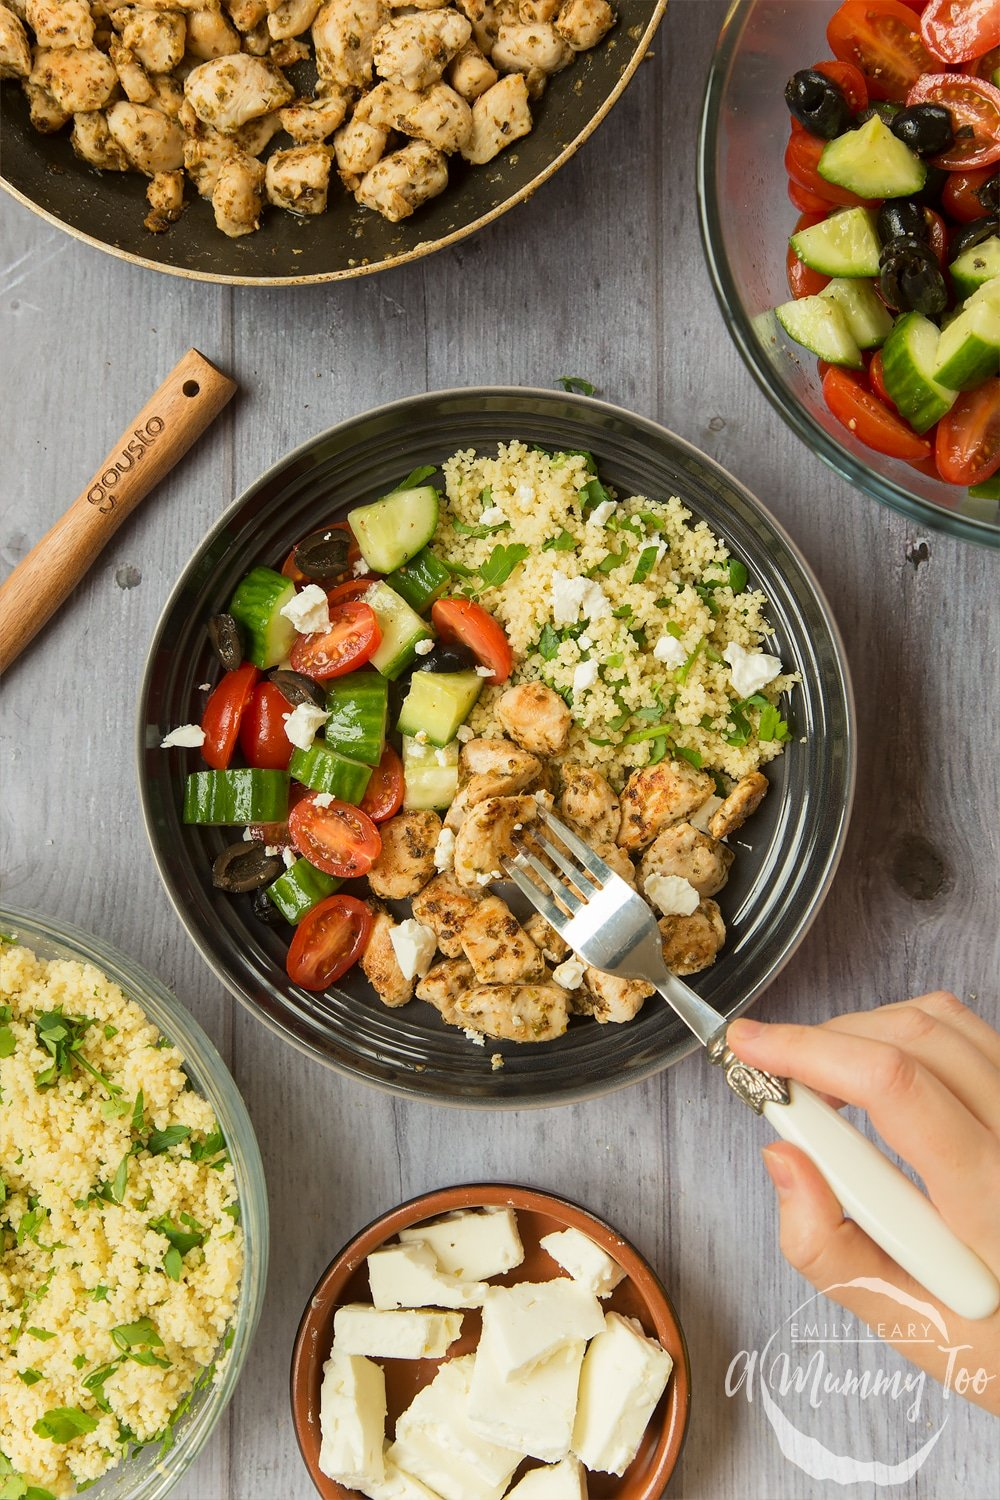 This speedy Greek chicken salad recipe is from the Gousto x Joe Wicks collaboration, shown here in a bowl